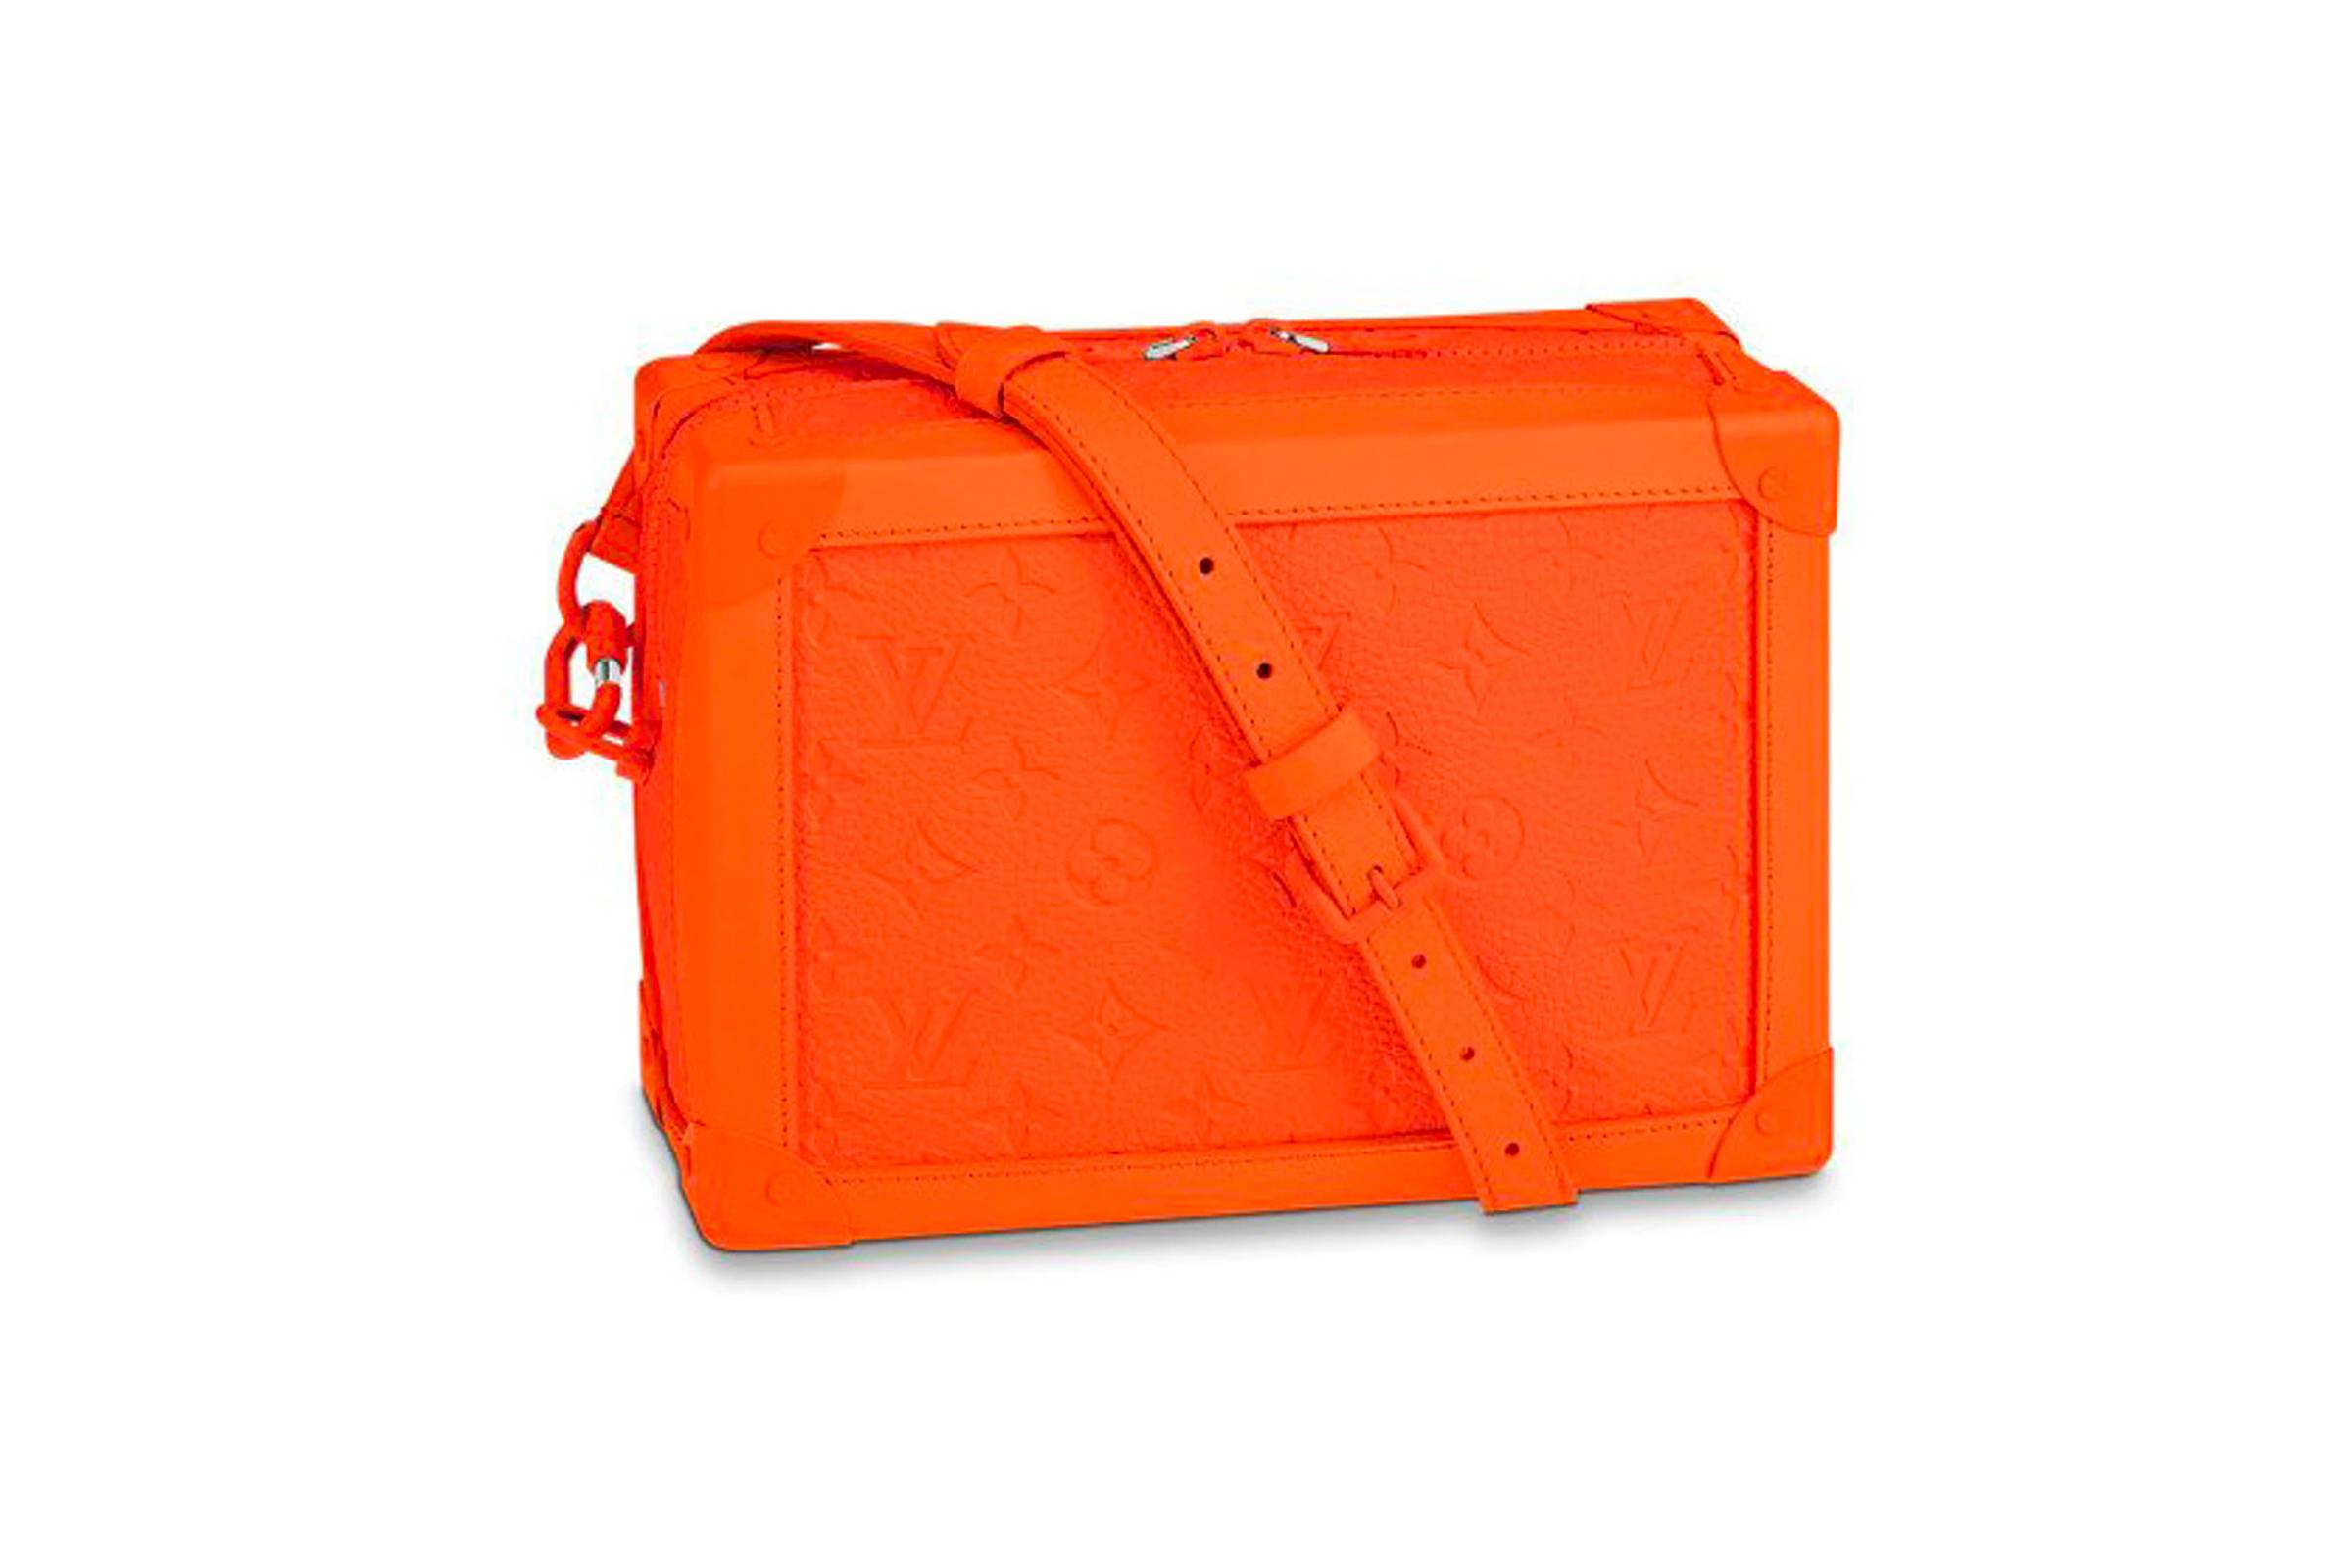 Louis Vuitton Soft Trunk Monogram MCA Orange